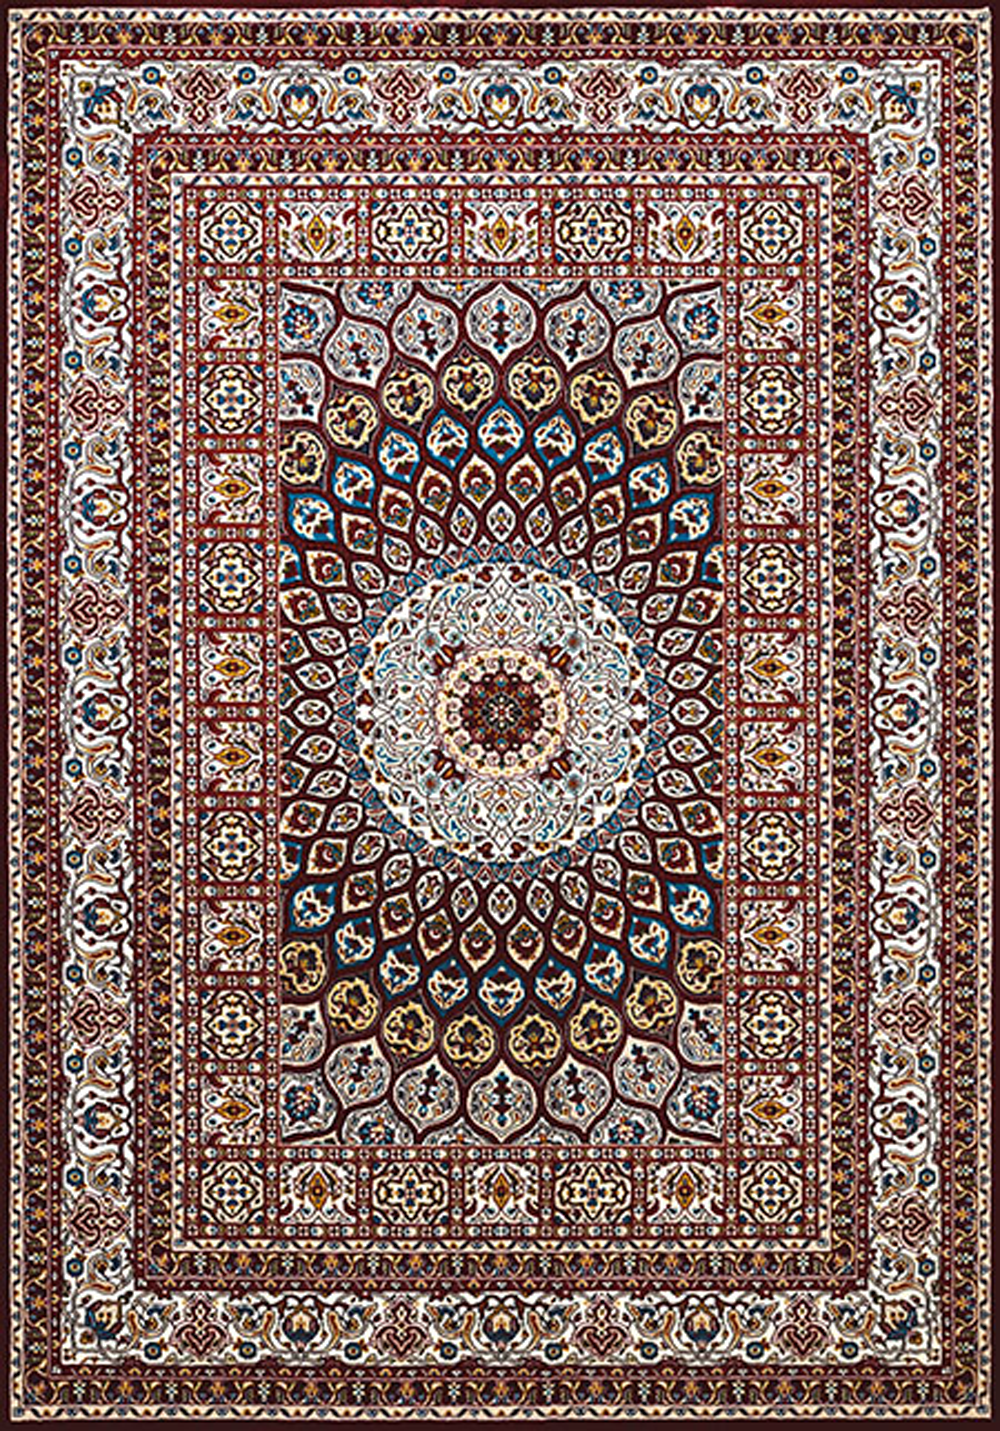 United Weavers - Antiquities Rug Collection -  JAIPUR RUBY (1900-01639)